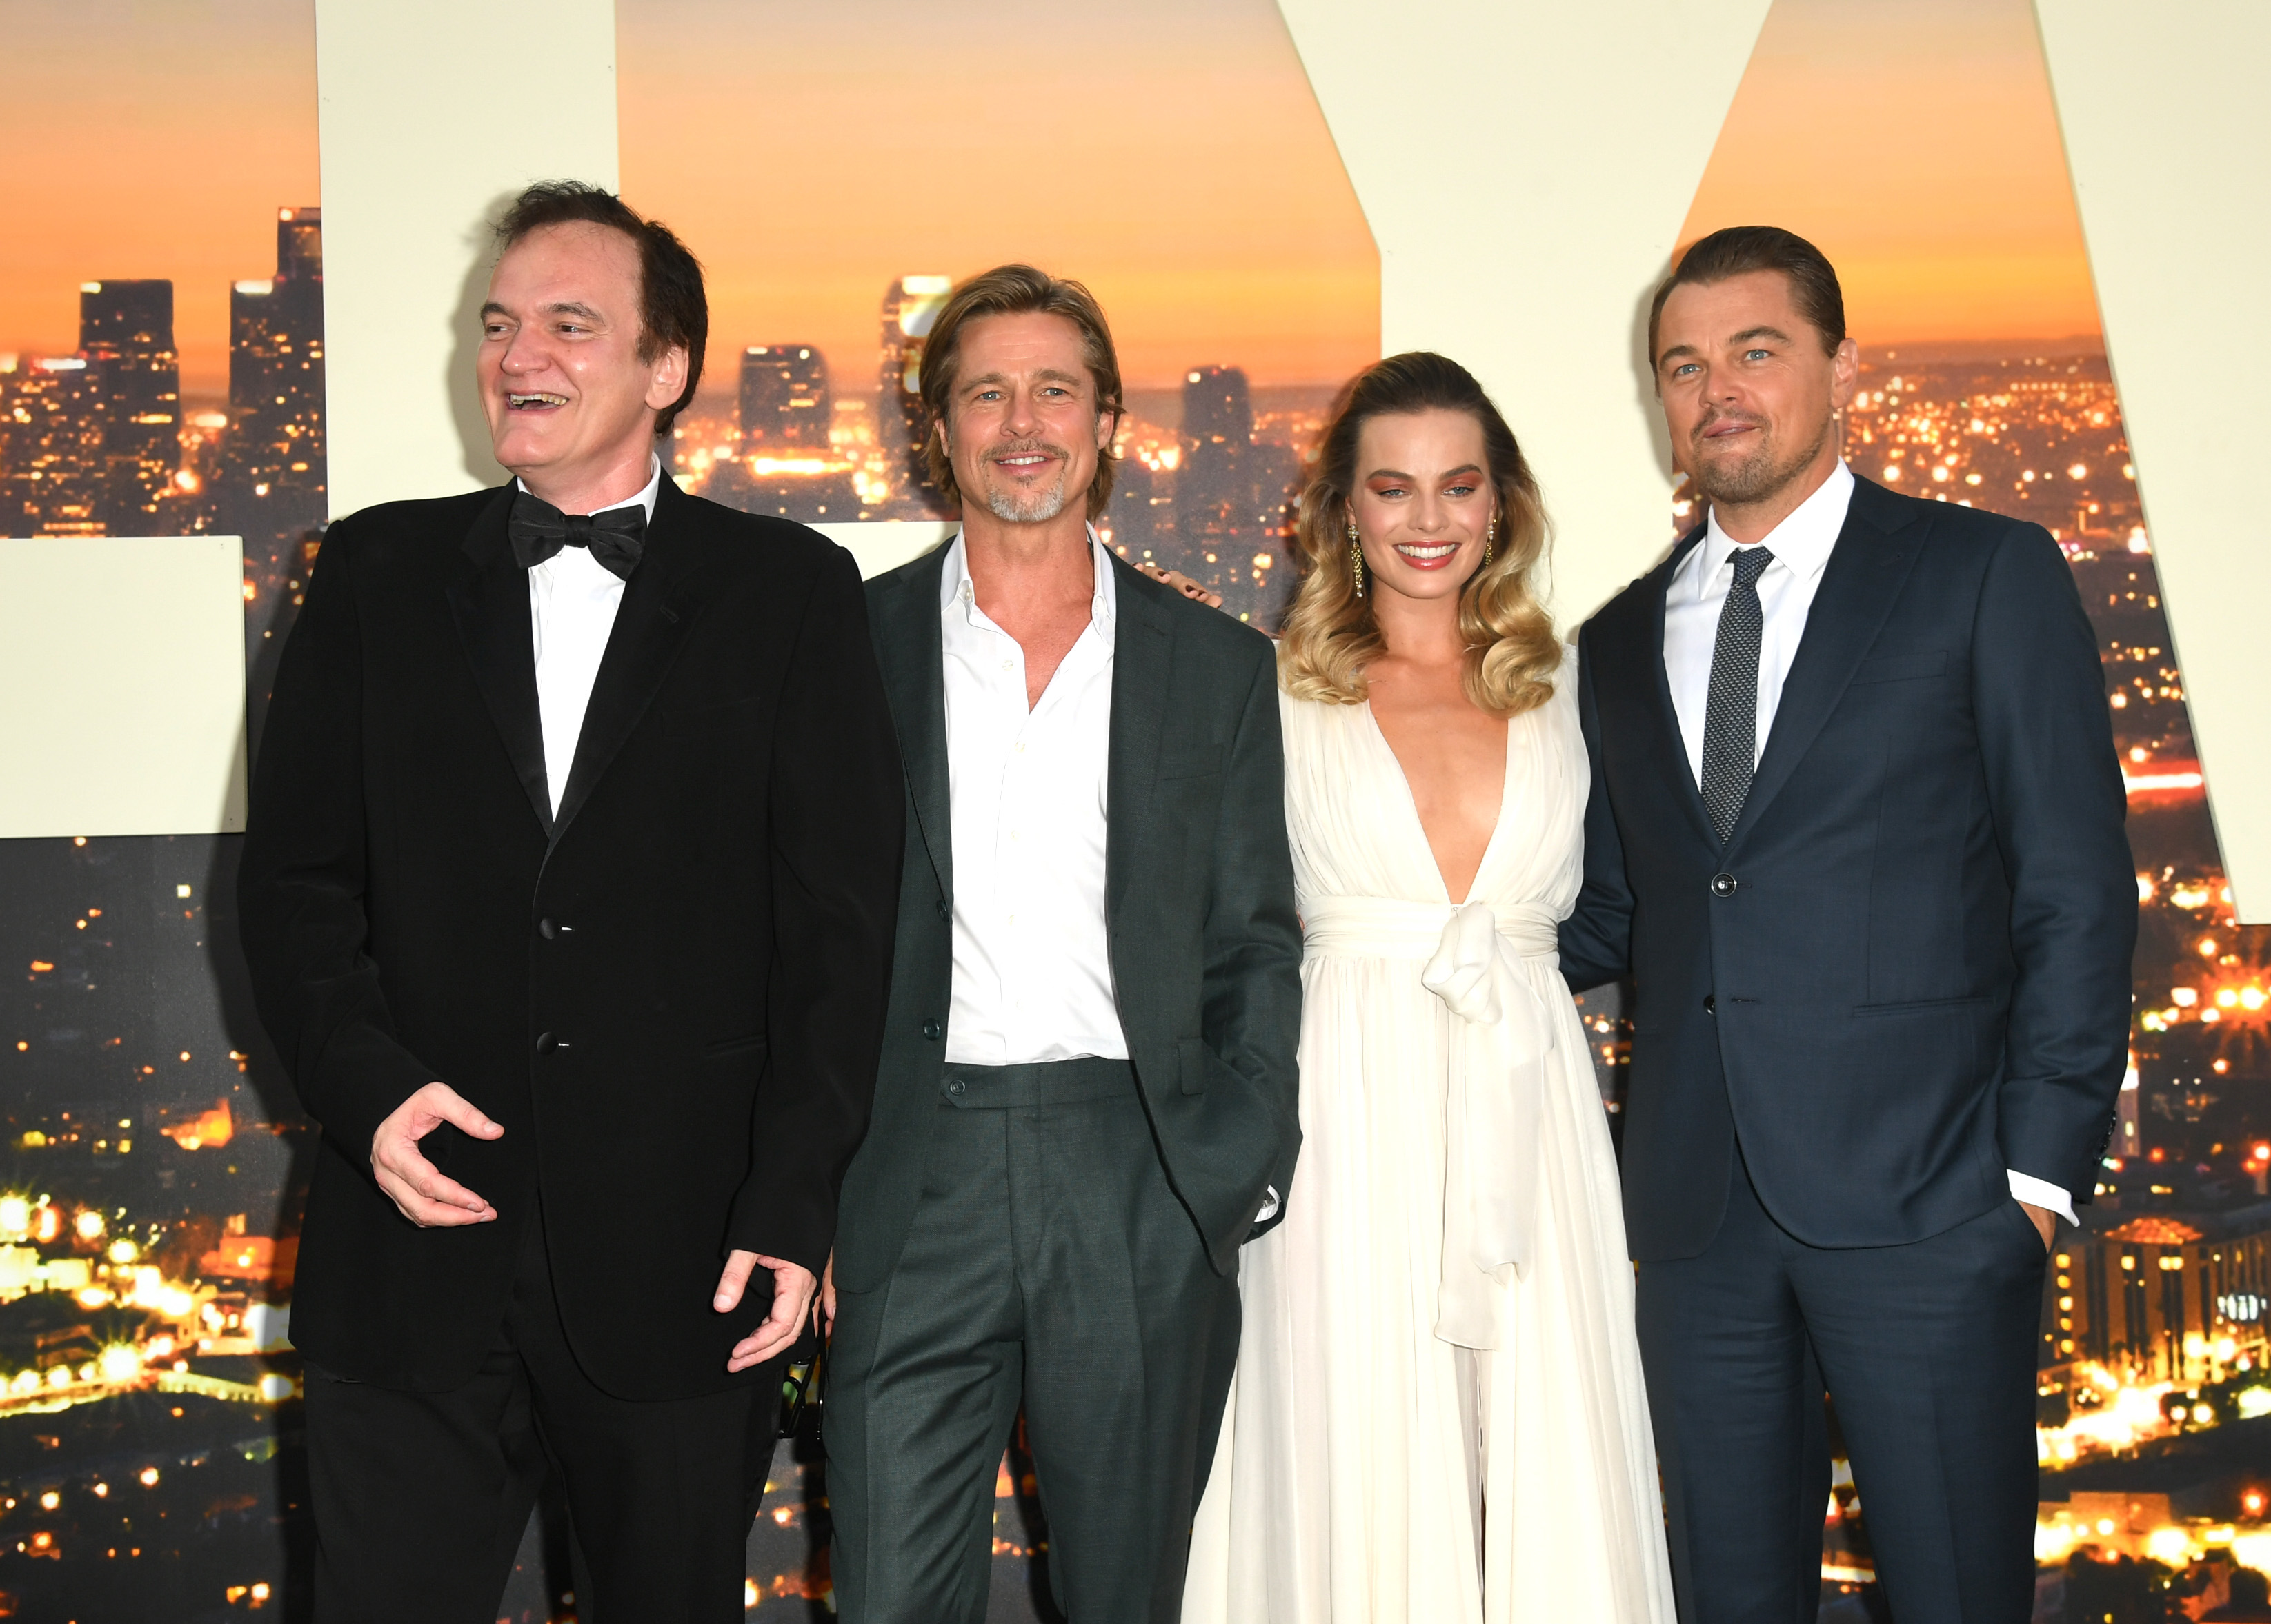 Quentin Tarantino, Brad Pitt, Margot Robbie, Leonardo DiCaprio premiere Once Upon A Time In Hollywood